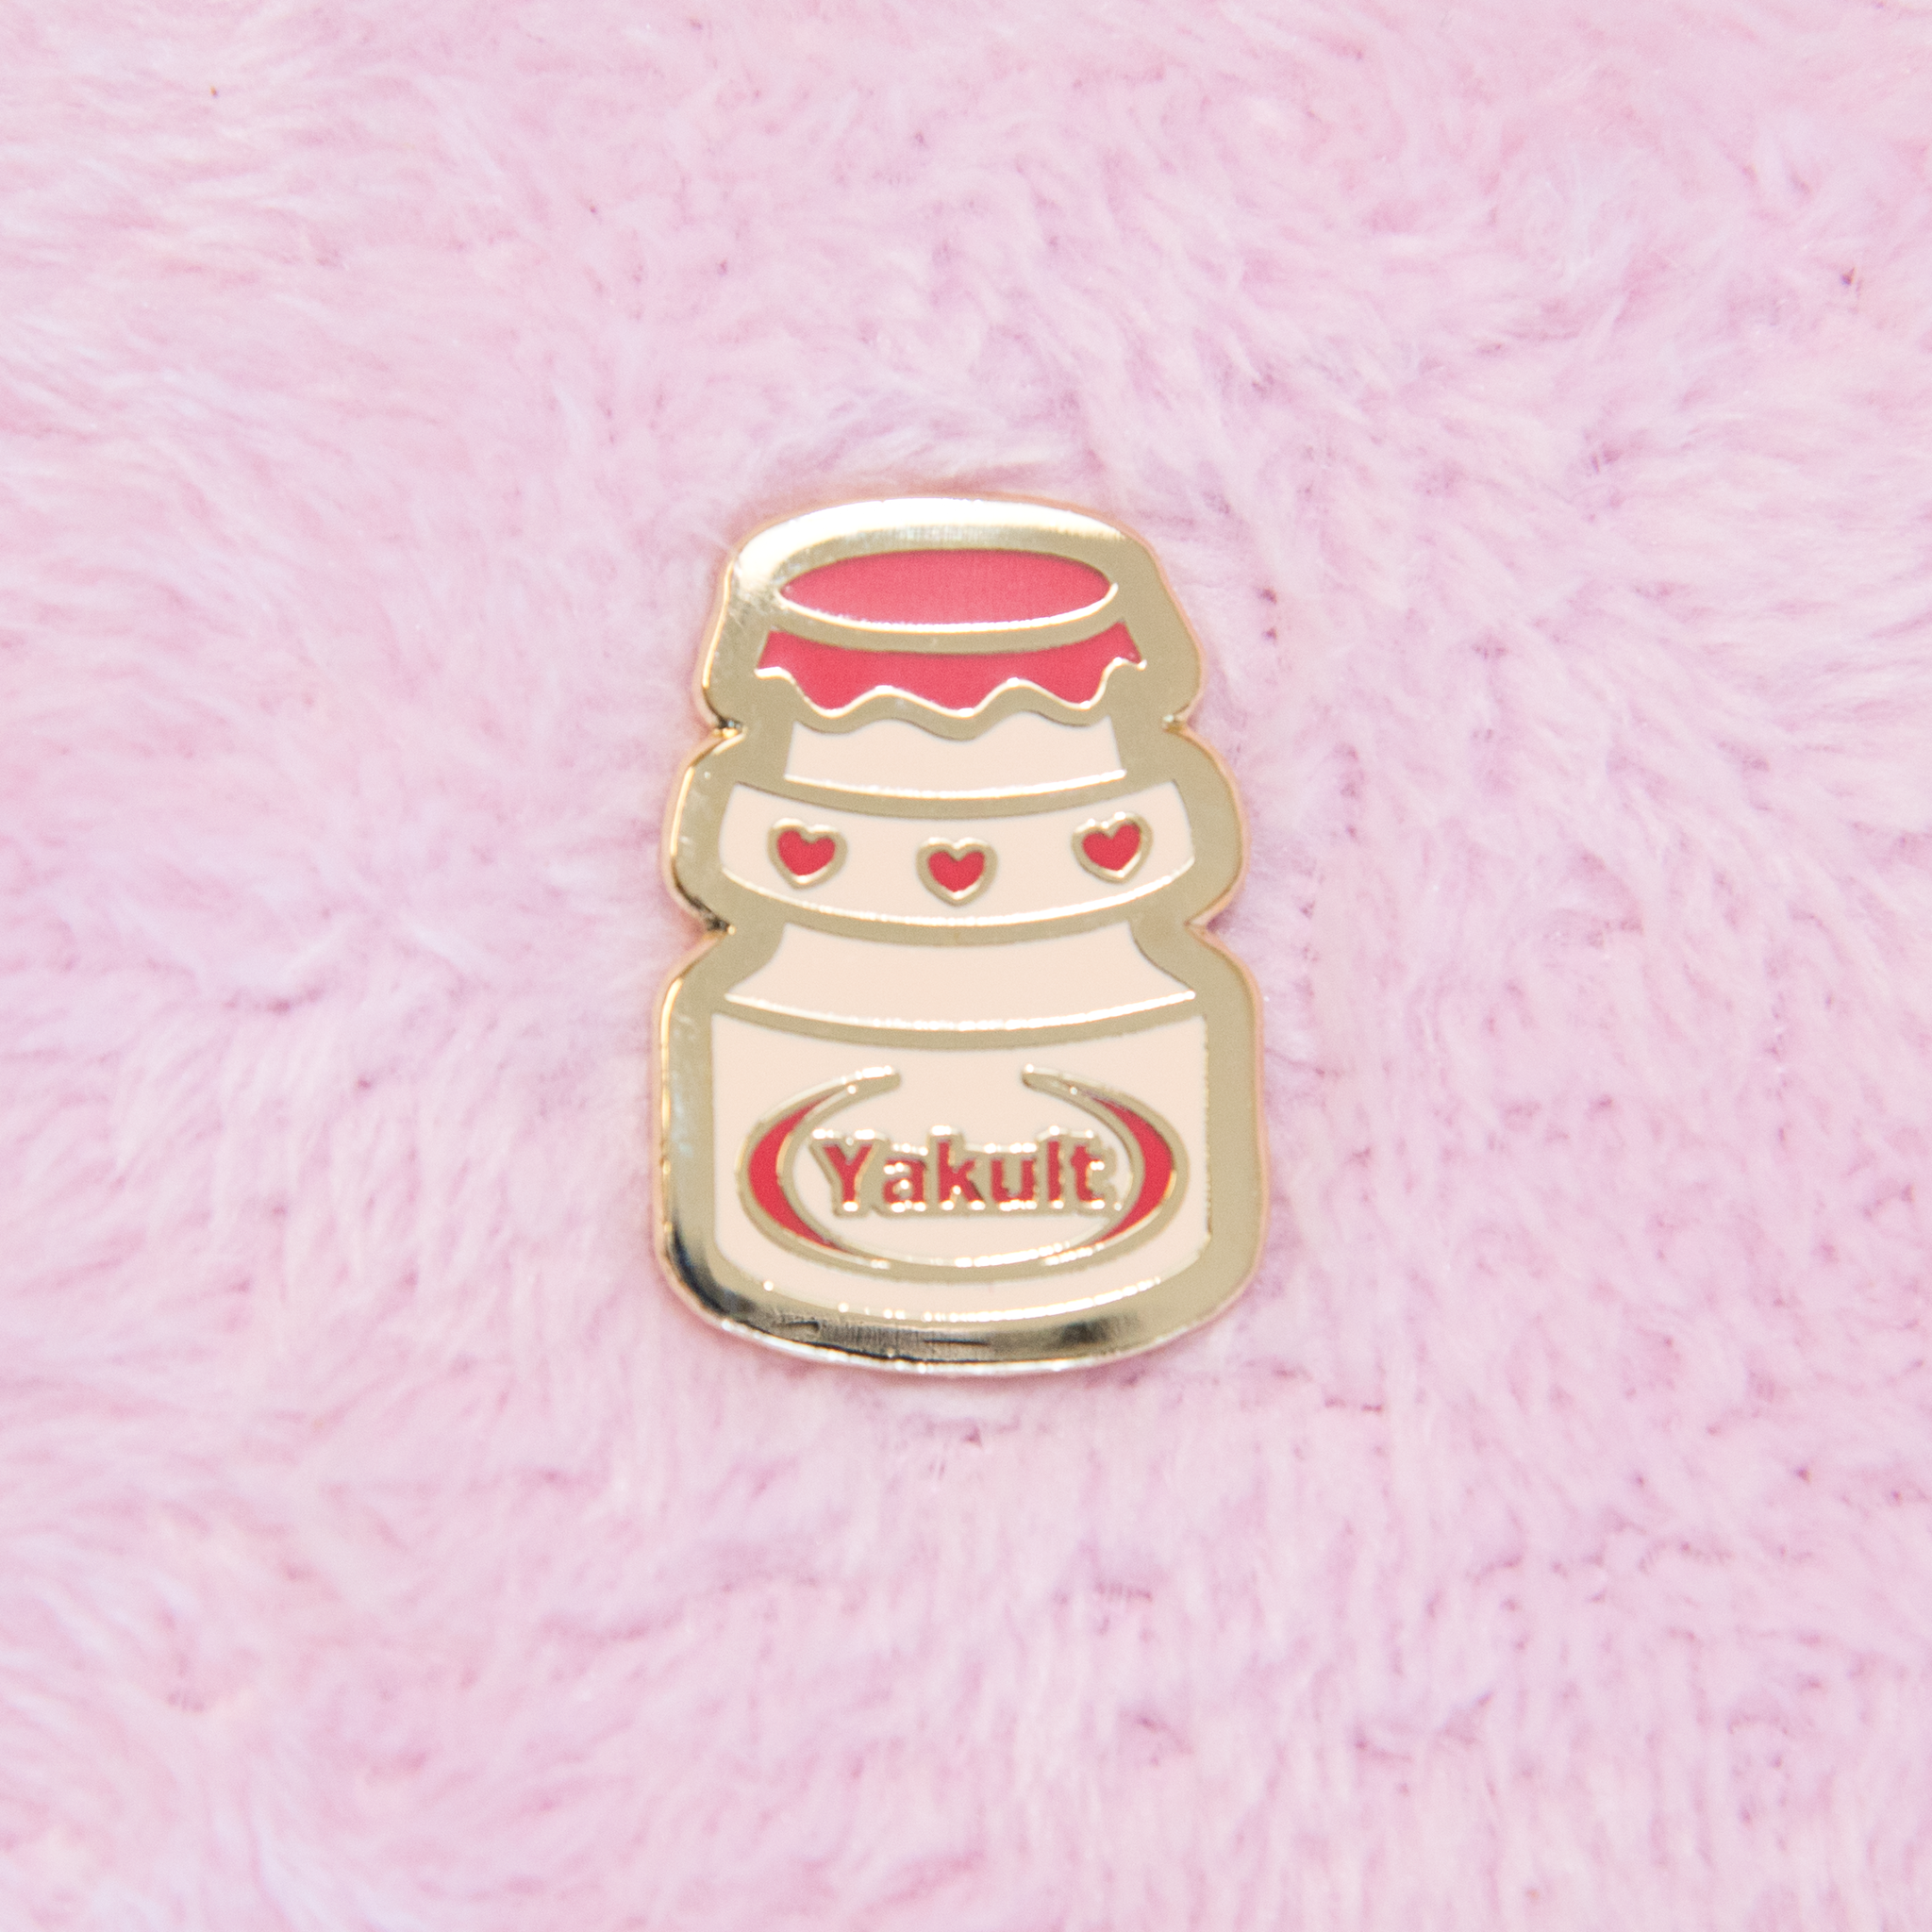 Yakult Mini Pin